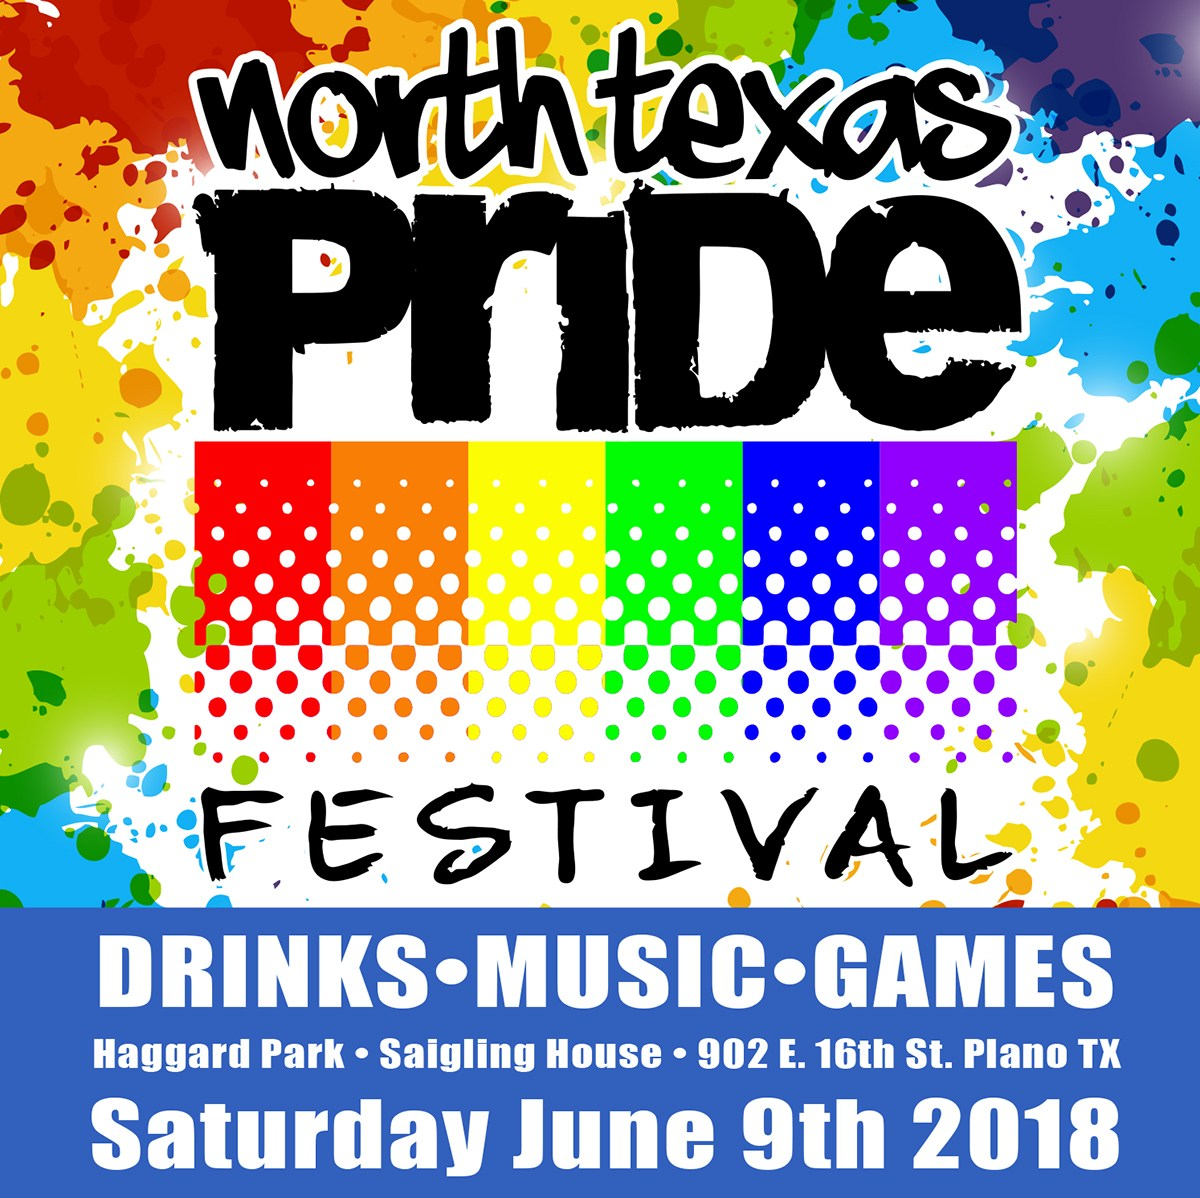 North Texas Pride Festival, North Texas Pride Foundation, Plano, Historic Downtown Plano, Haggard Park, Saigling House